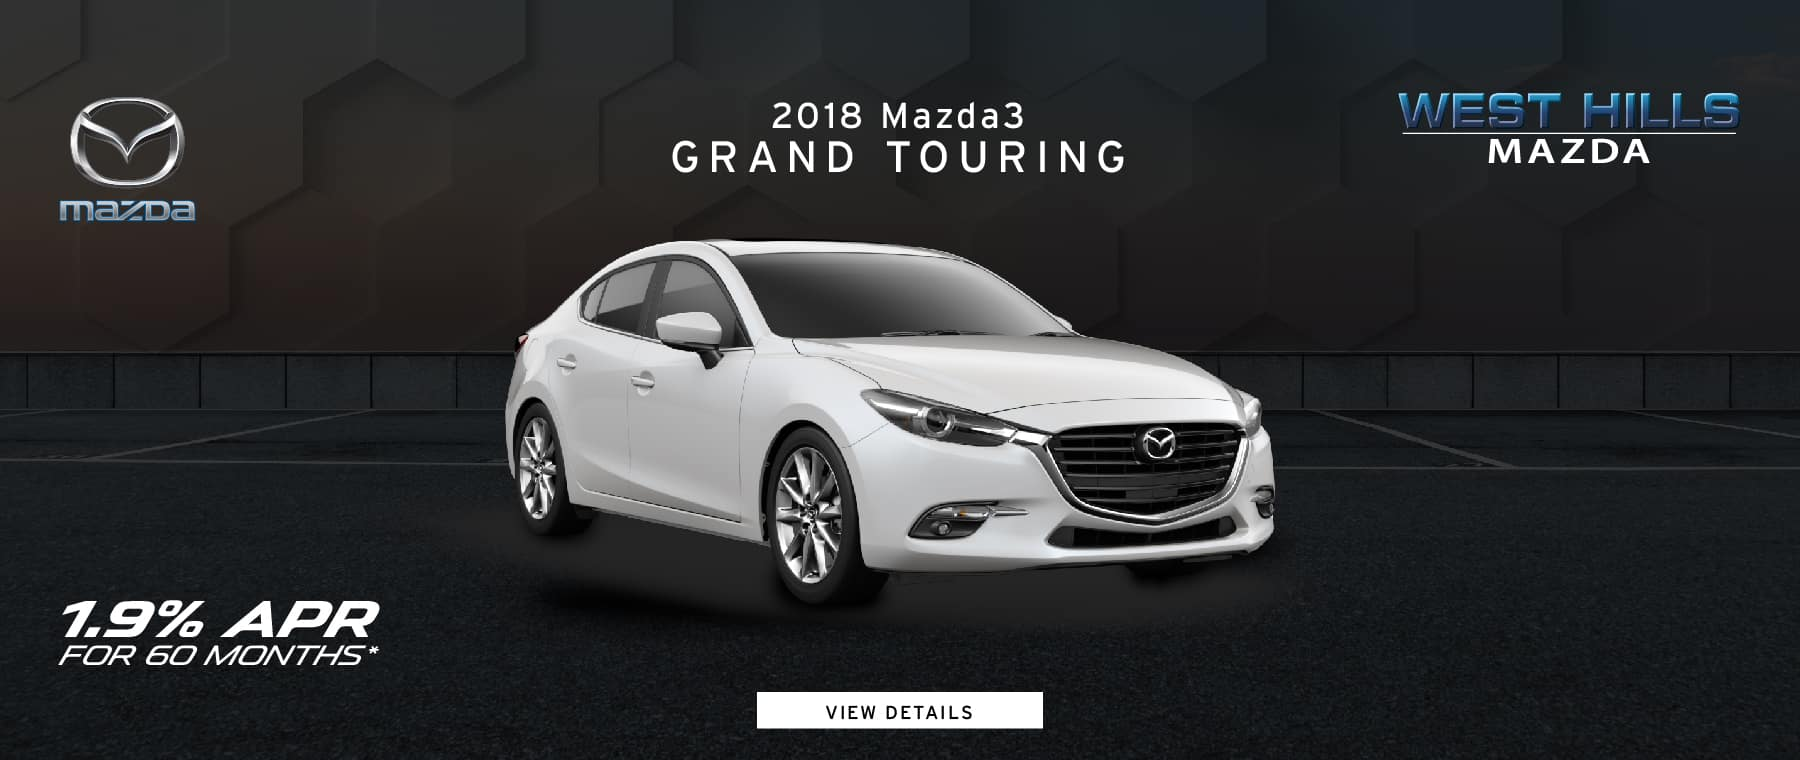 2018 Mazda3 Grand Touring 1.9% APR for 60mos.* *1.9% APR for 60 mos. Subject to credit approval through participating lender – not all will qualify. Down payment and other factors may affect qualification. Valid on VIN: 3MZBN1W32JM209107. 60 months at $17.53 per month per $1000 financed with $0 down. A negotiable dealer documentary service fee of up to $150 may be added to the sale price or capitalized cost. Excludes taxes, tags, registration and title, insurance and dealer charges. Offer Expires: 1/31/2019.